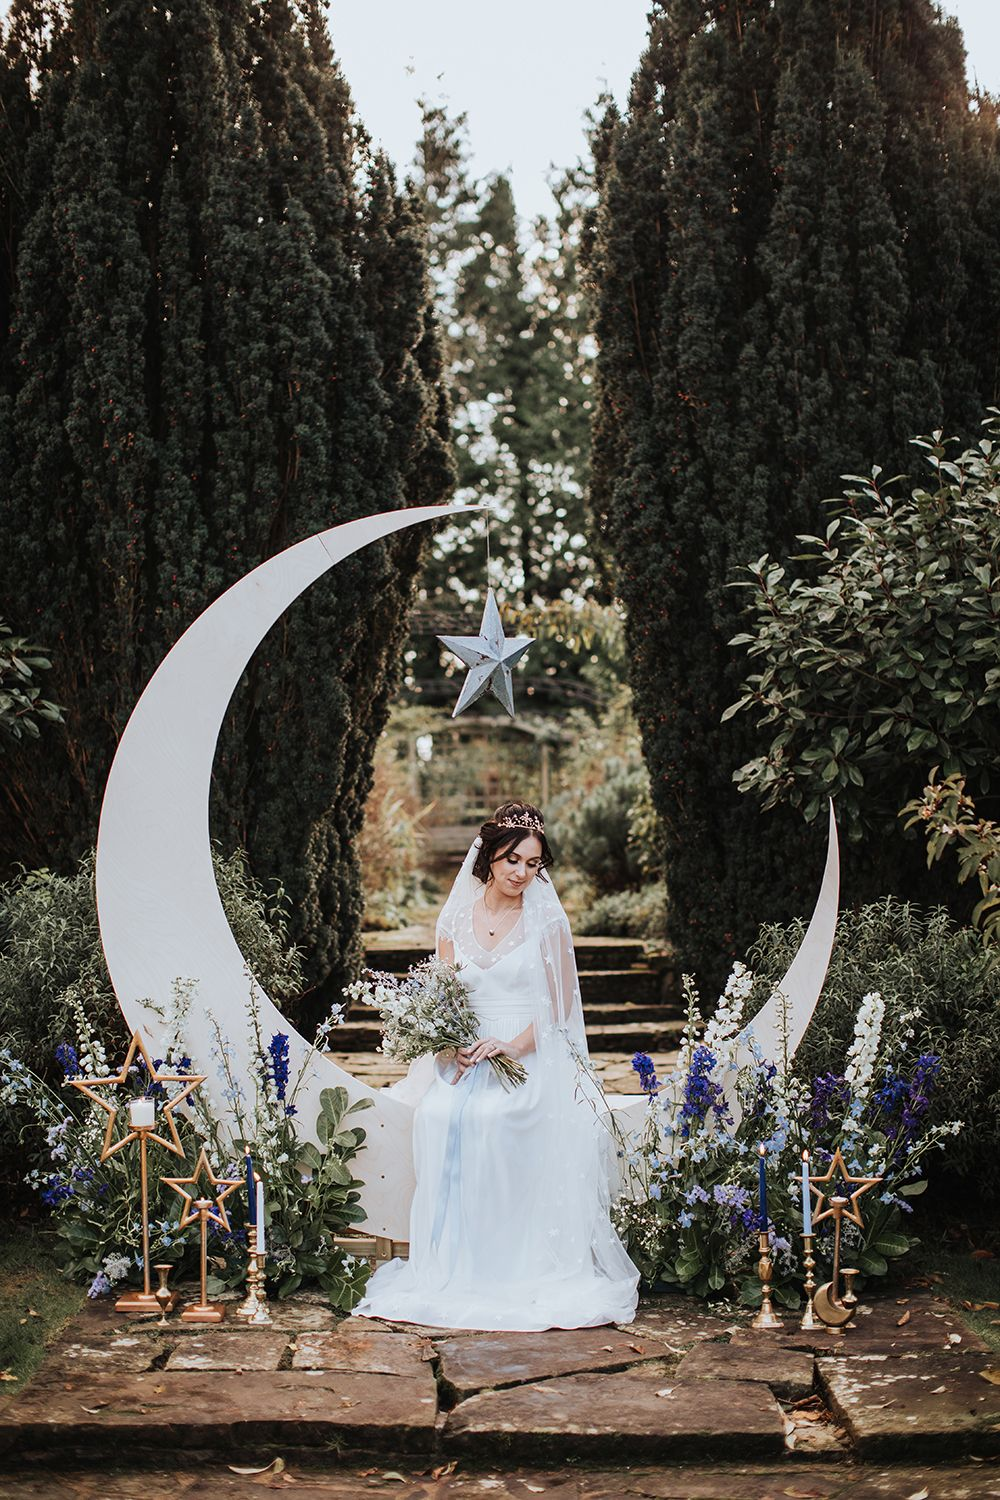 Pin By Delaney Adele On Wedding In 2020 Star Themed Wedding Star Wedding Moon Wedding